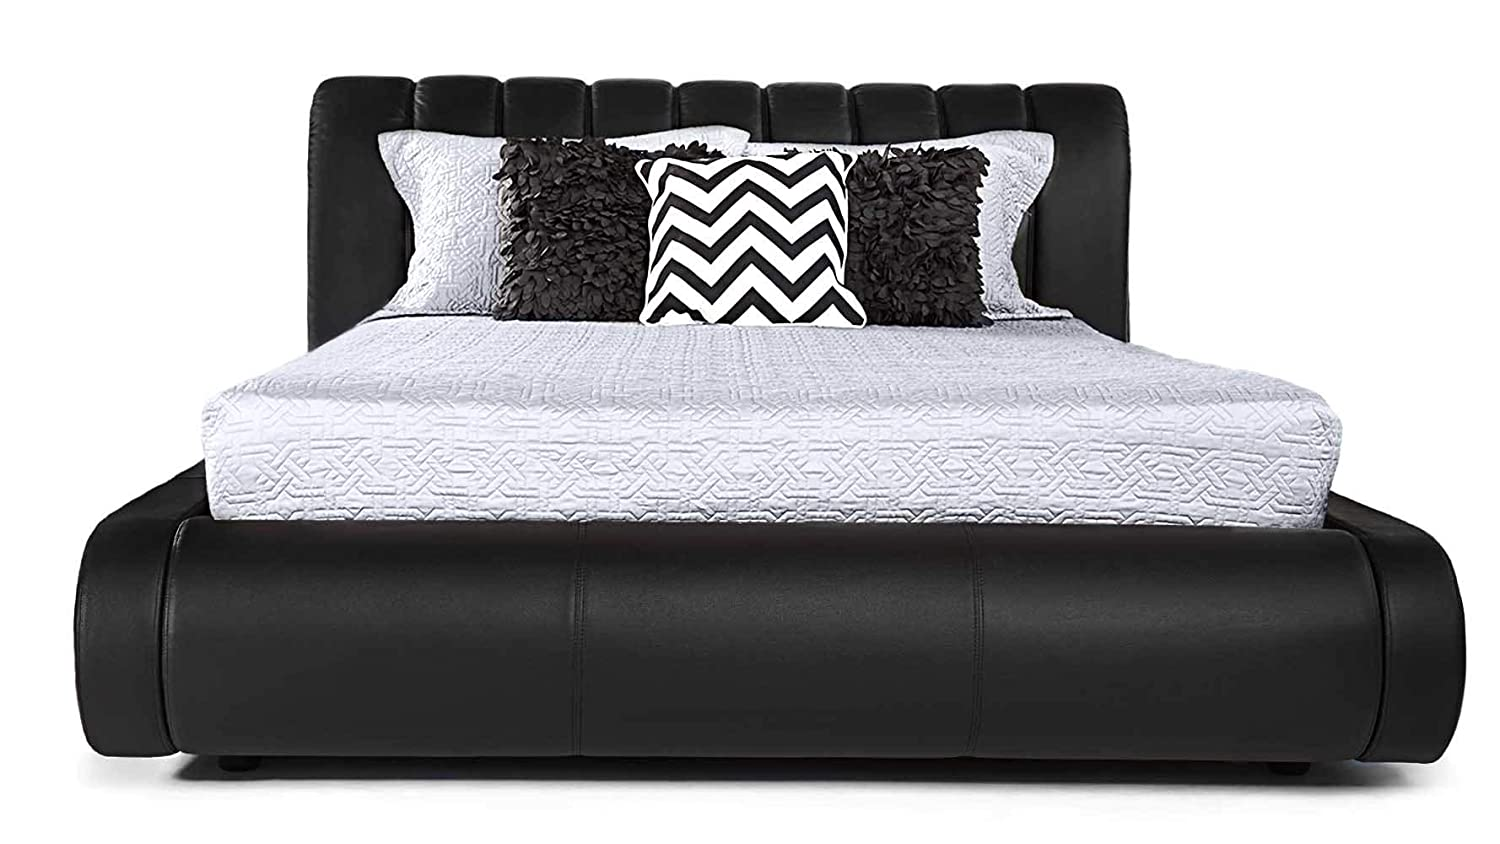 Top 8 Best Curved Platform Beds Reviews in 2020 13